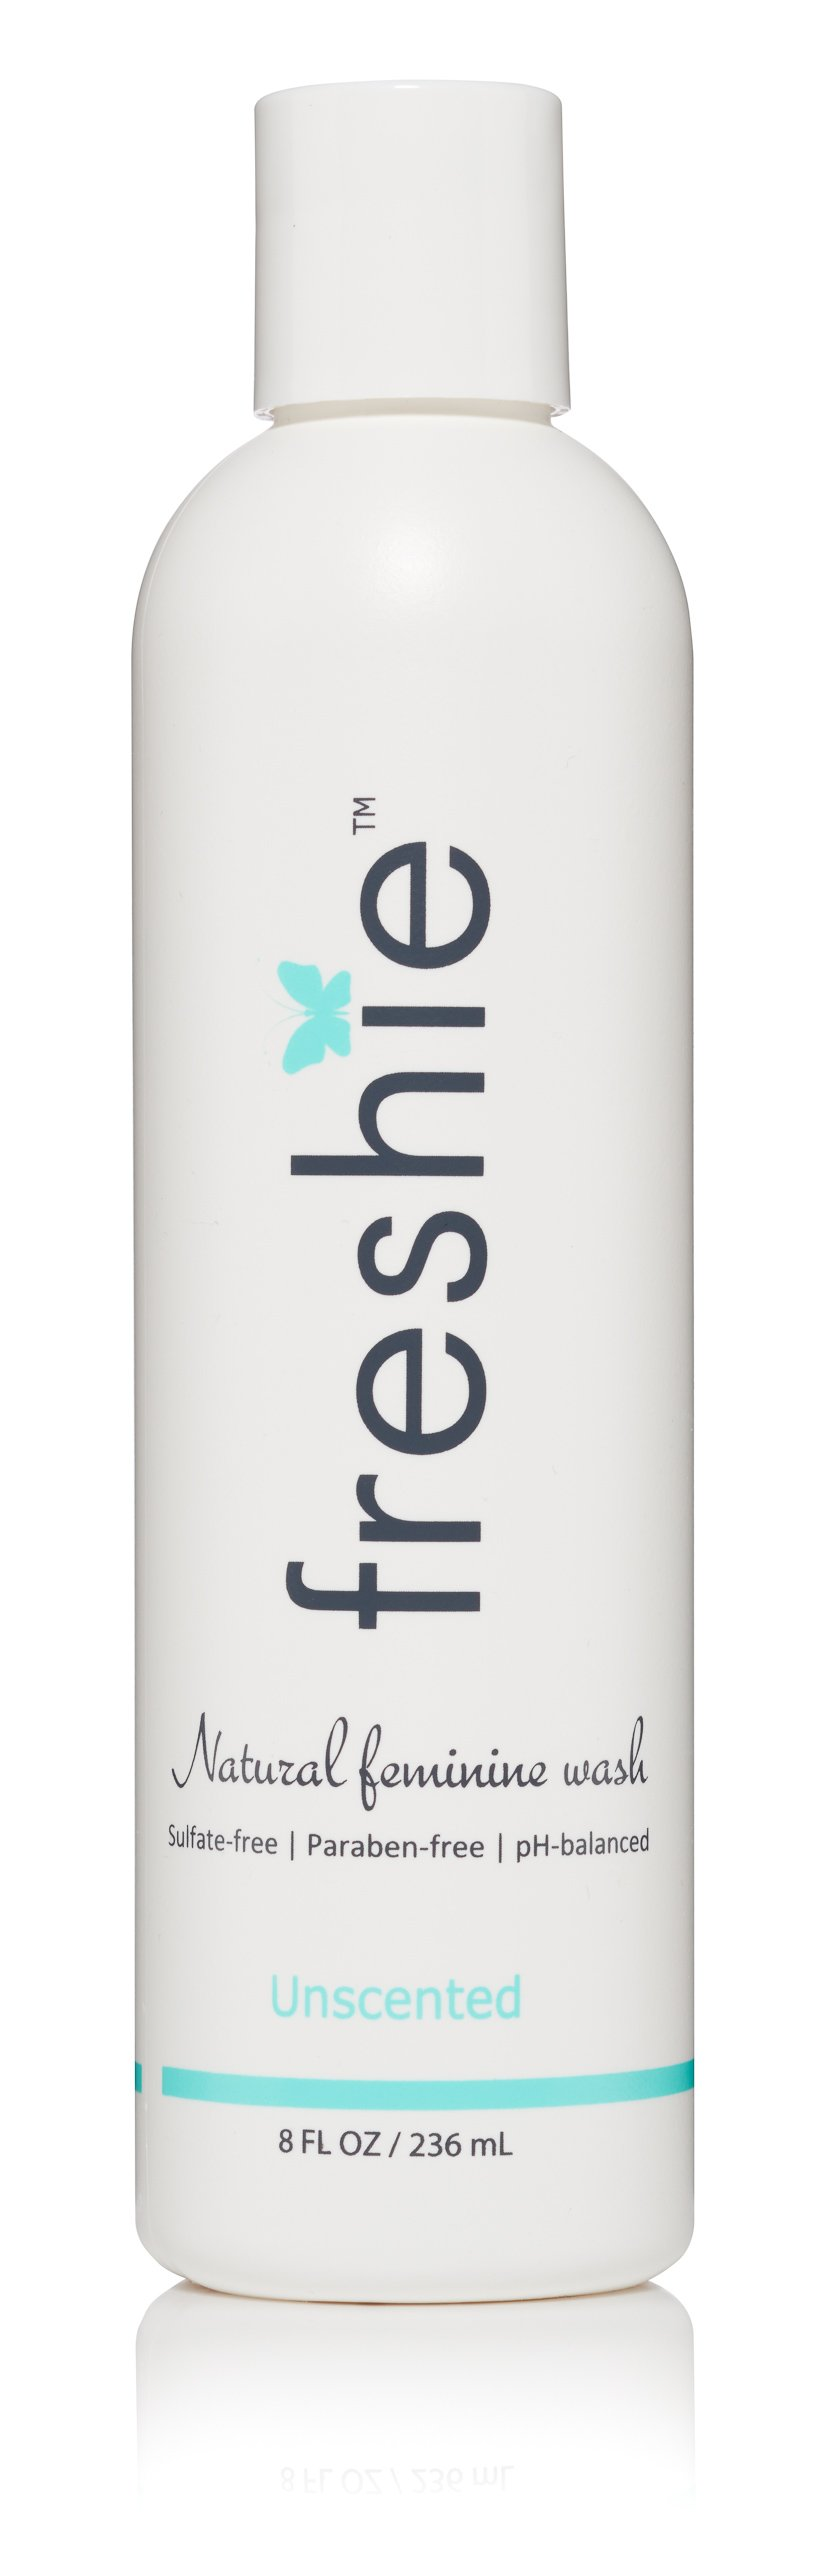 freshie Natural Feminine Care pH-Balanced Feminine Wash with Odor-Blocking, Plant Derived Ingredients for External Vaginal Cleansing (Lightly Fresh Fragrance Free)